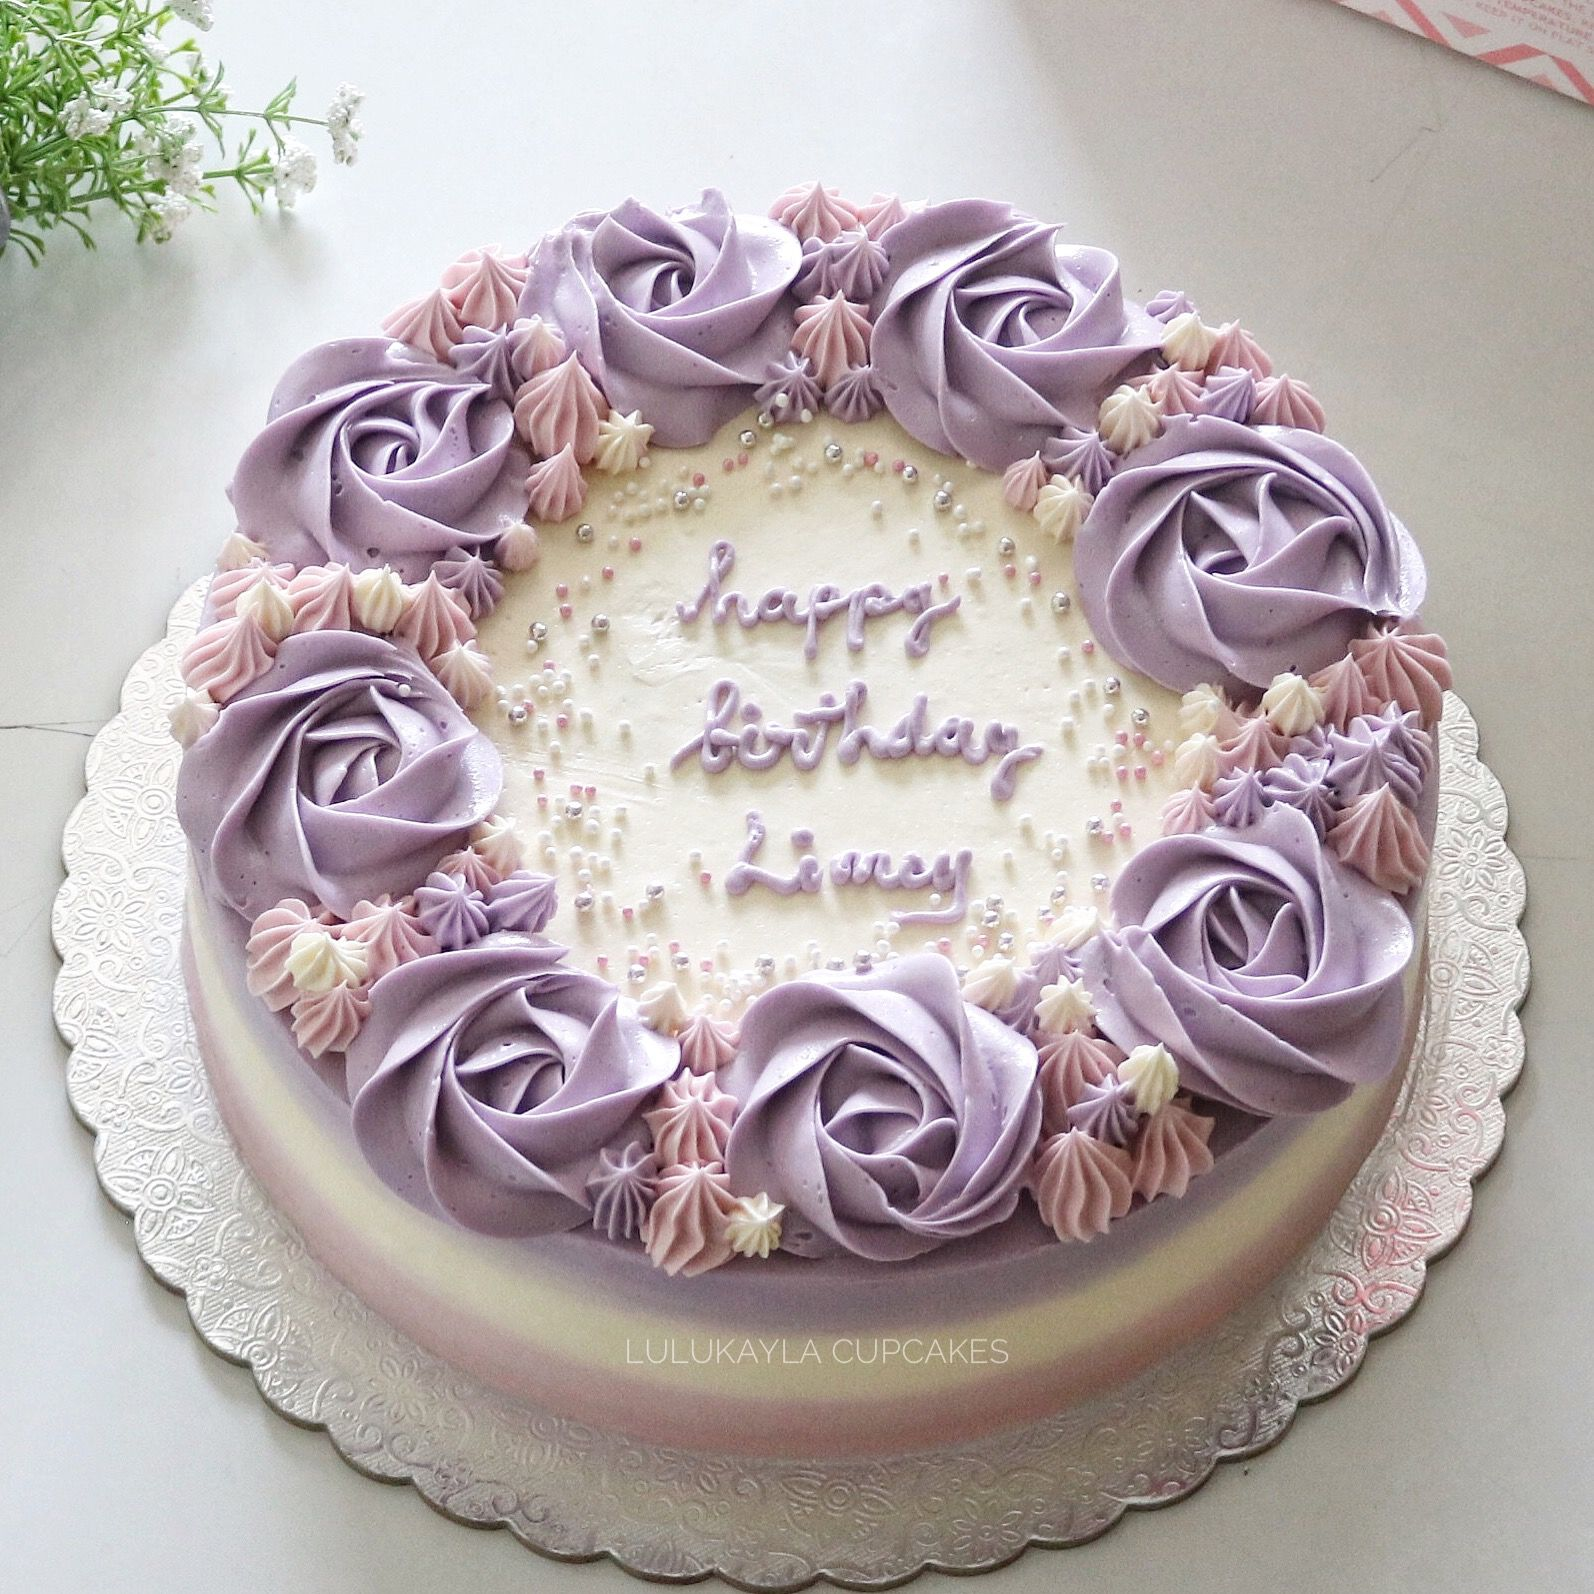 Updated Classic Lindo Detalhe E Cores Rosette Cake Cake Decorating Designs Birthday Cake With Flowers